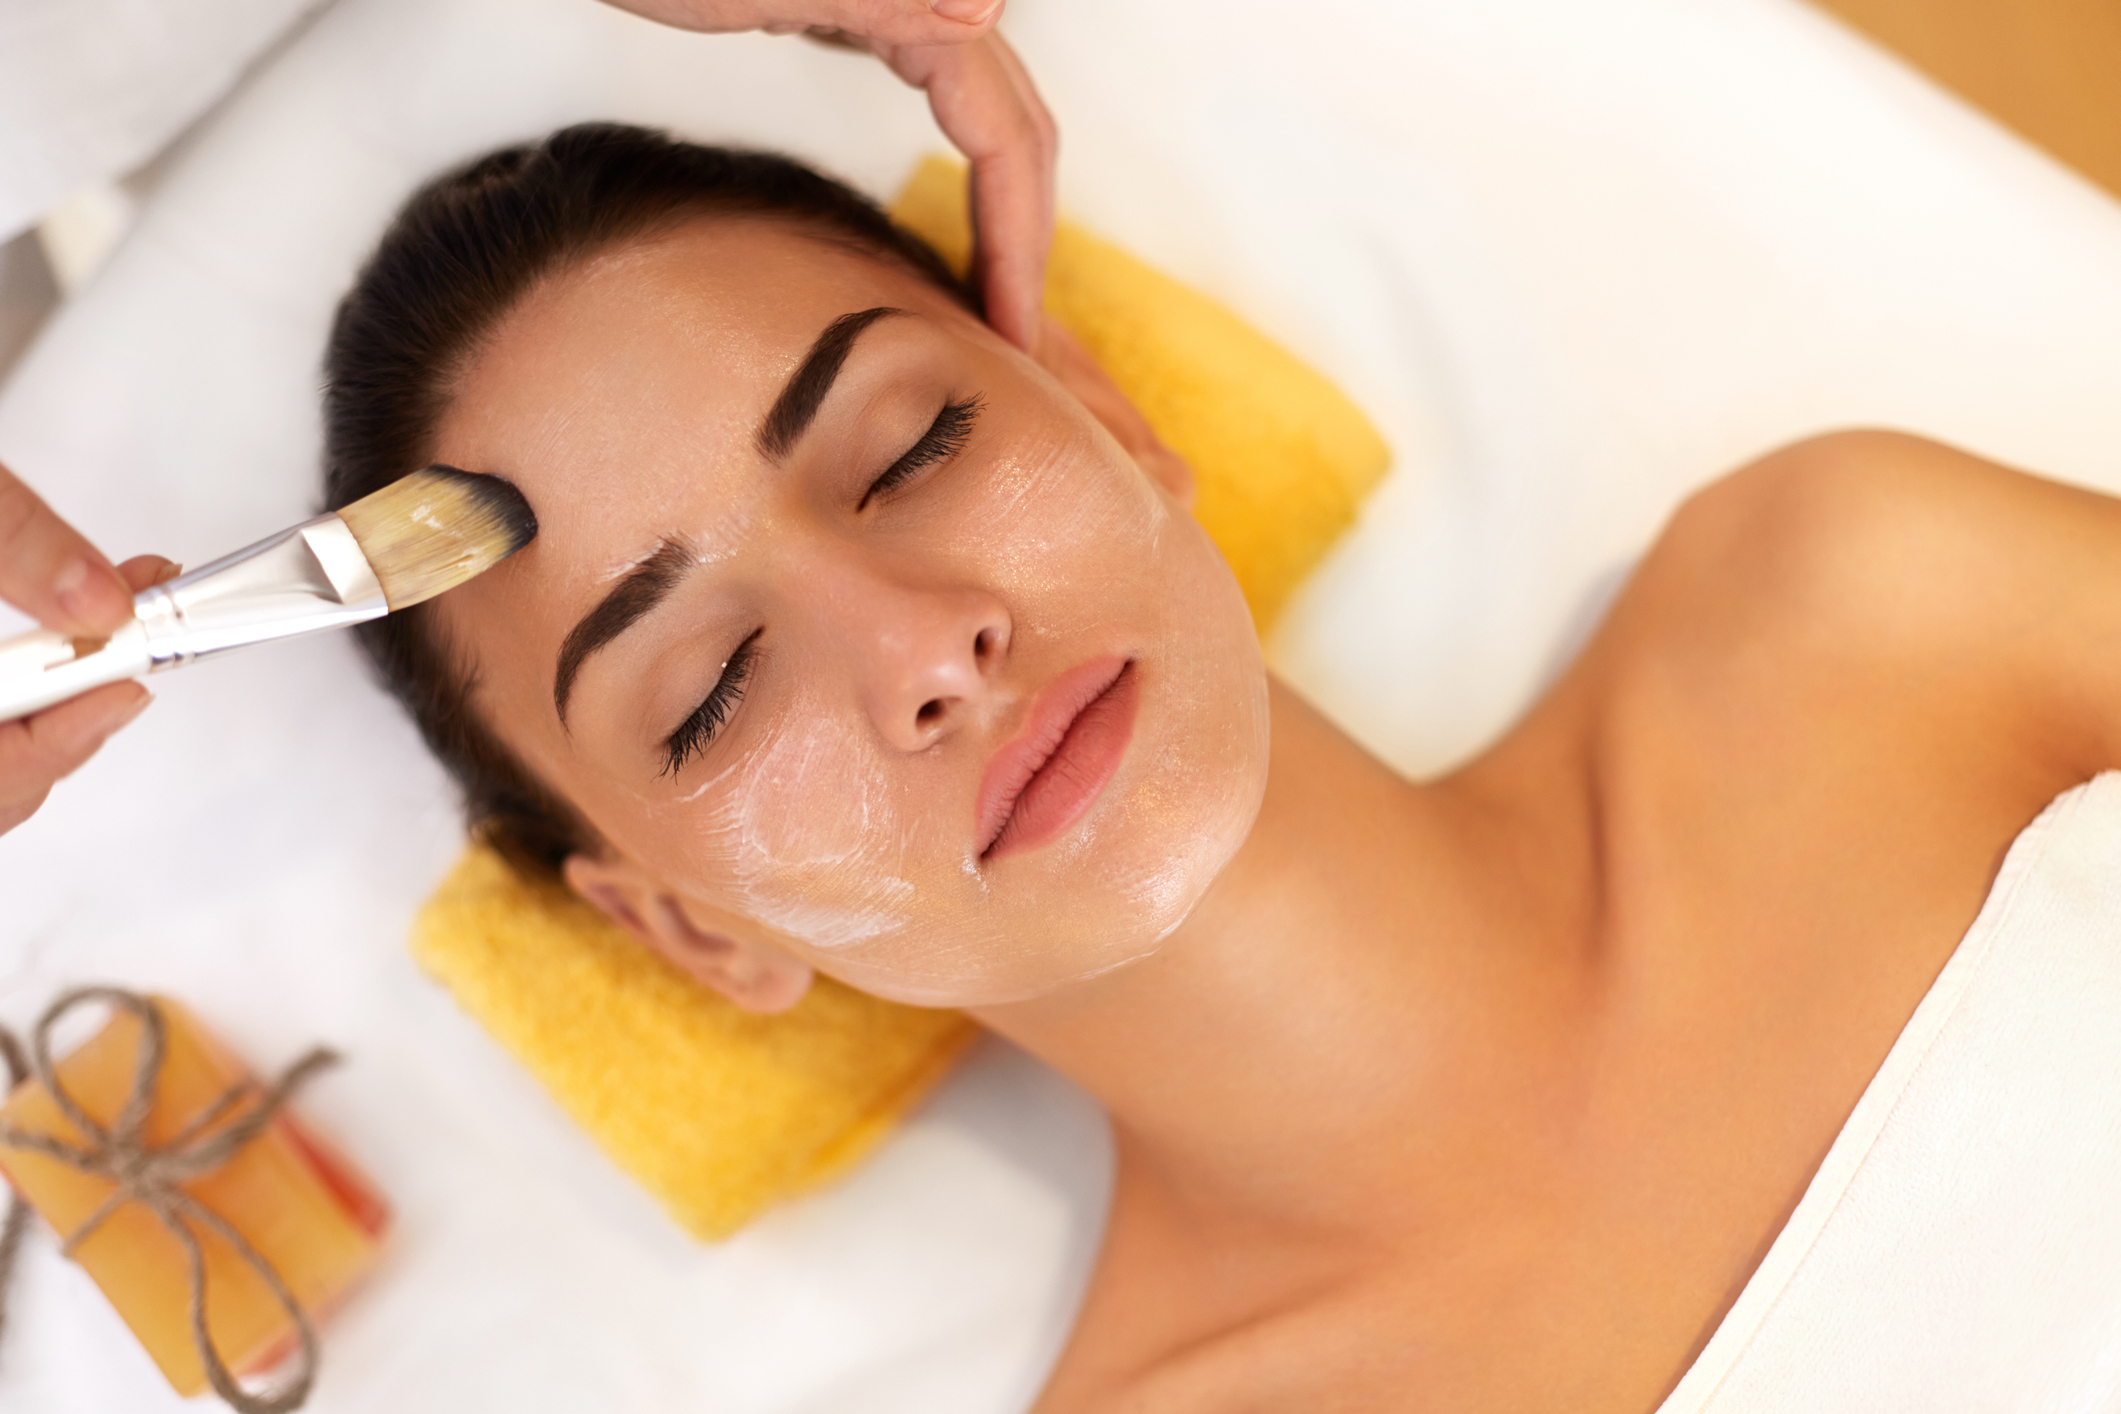 Luxurious Facials - Essential Custom FacialStart with the Essential Custom Facial and experience medical grade facial treatment tailored perfectly to your skin's needs and receive a complete skin analysis with recommendations. Your skin will be cleansed, exfoliated, steamed and smoothed leaving you with a hydrated and rejuvenated healthier skin. $125In a hurry? Try our:Glo N GoCreated for the person on the go, this customized facial is uniquely designed to give maximum results in minimum time! Includes cleansing, exfoliation, moisturizer and sun protection. $65